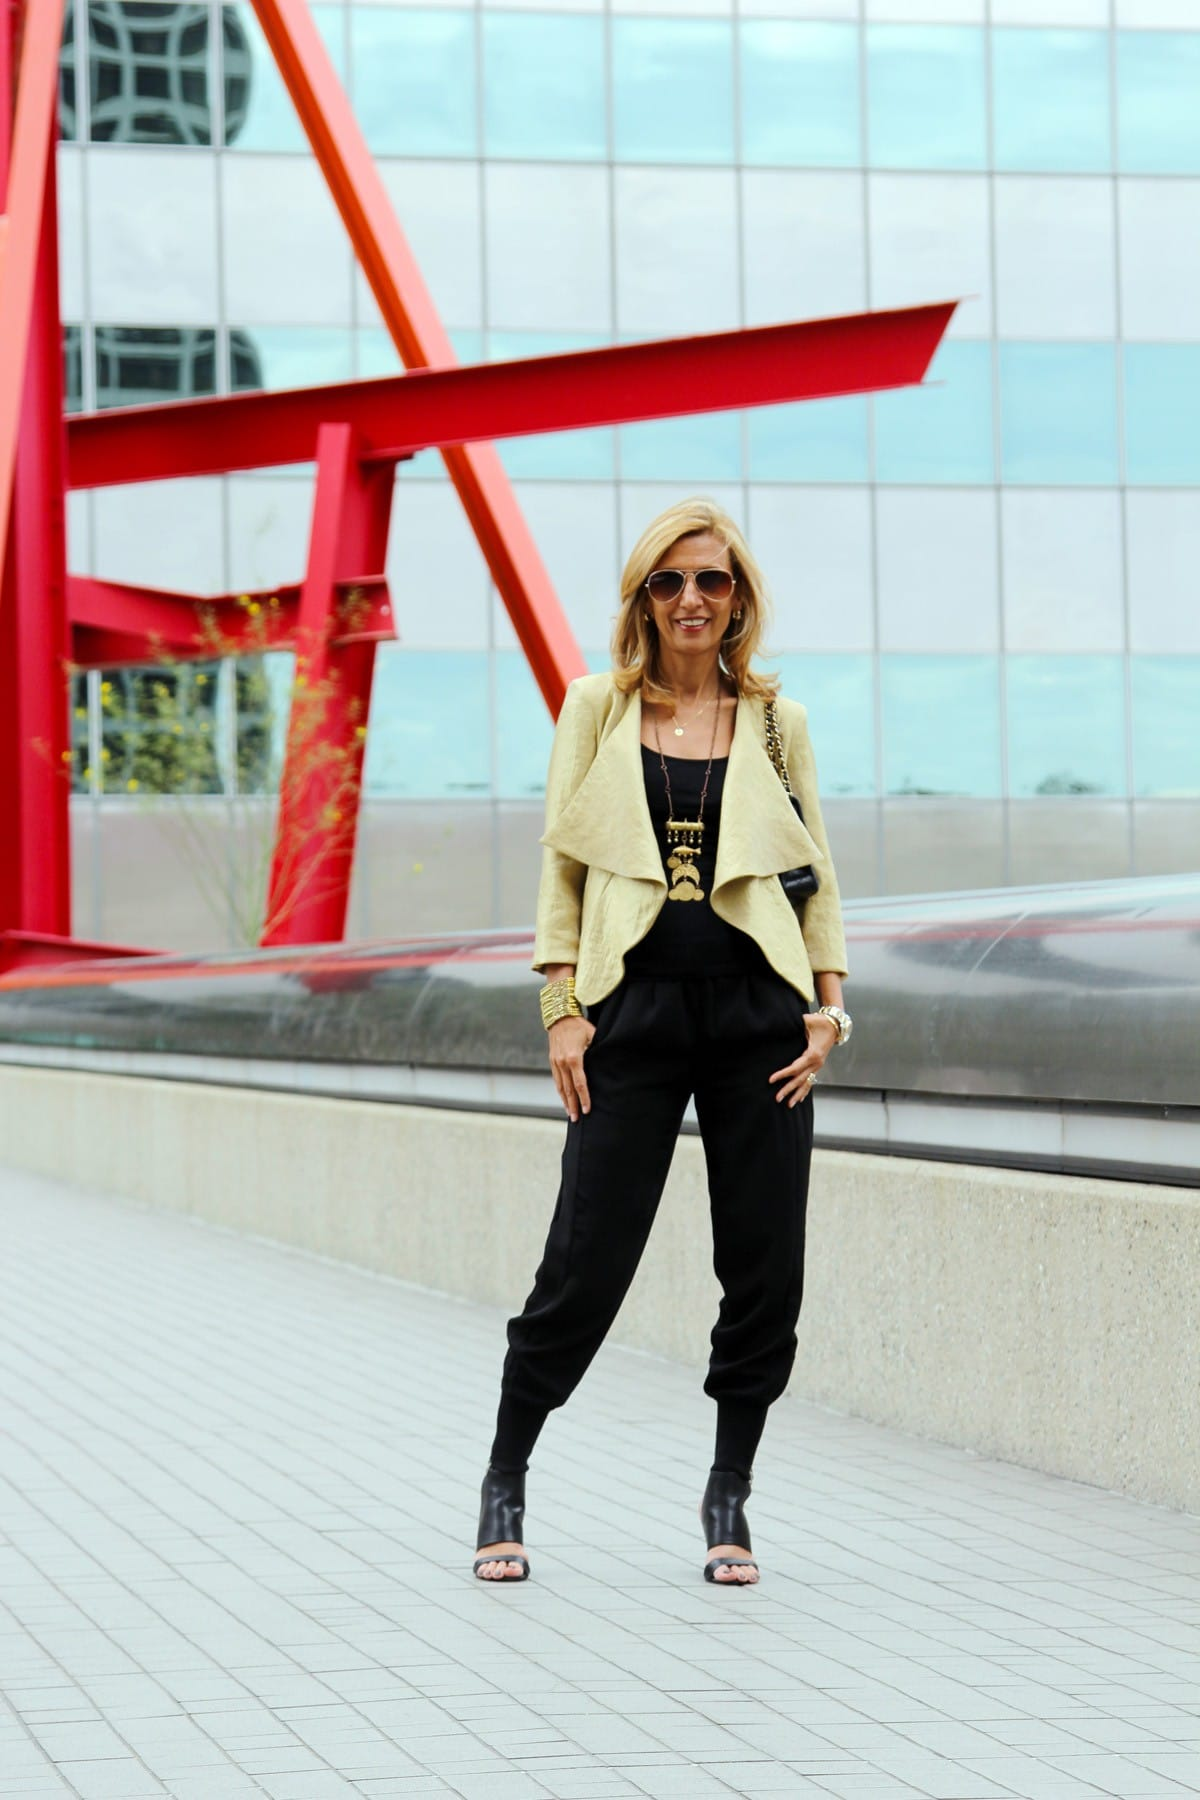 visiting-downtown-los-angeles-wearing-my-soleil-jacket-www.jacketsociety.com